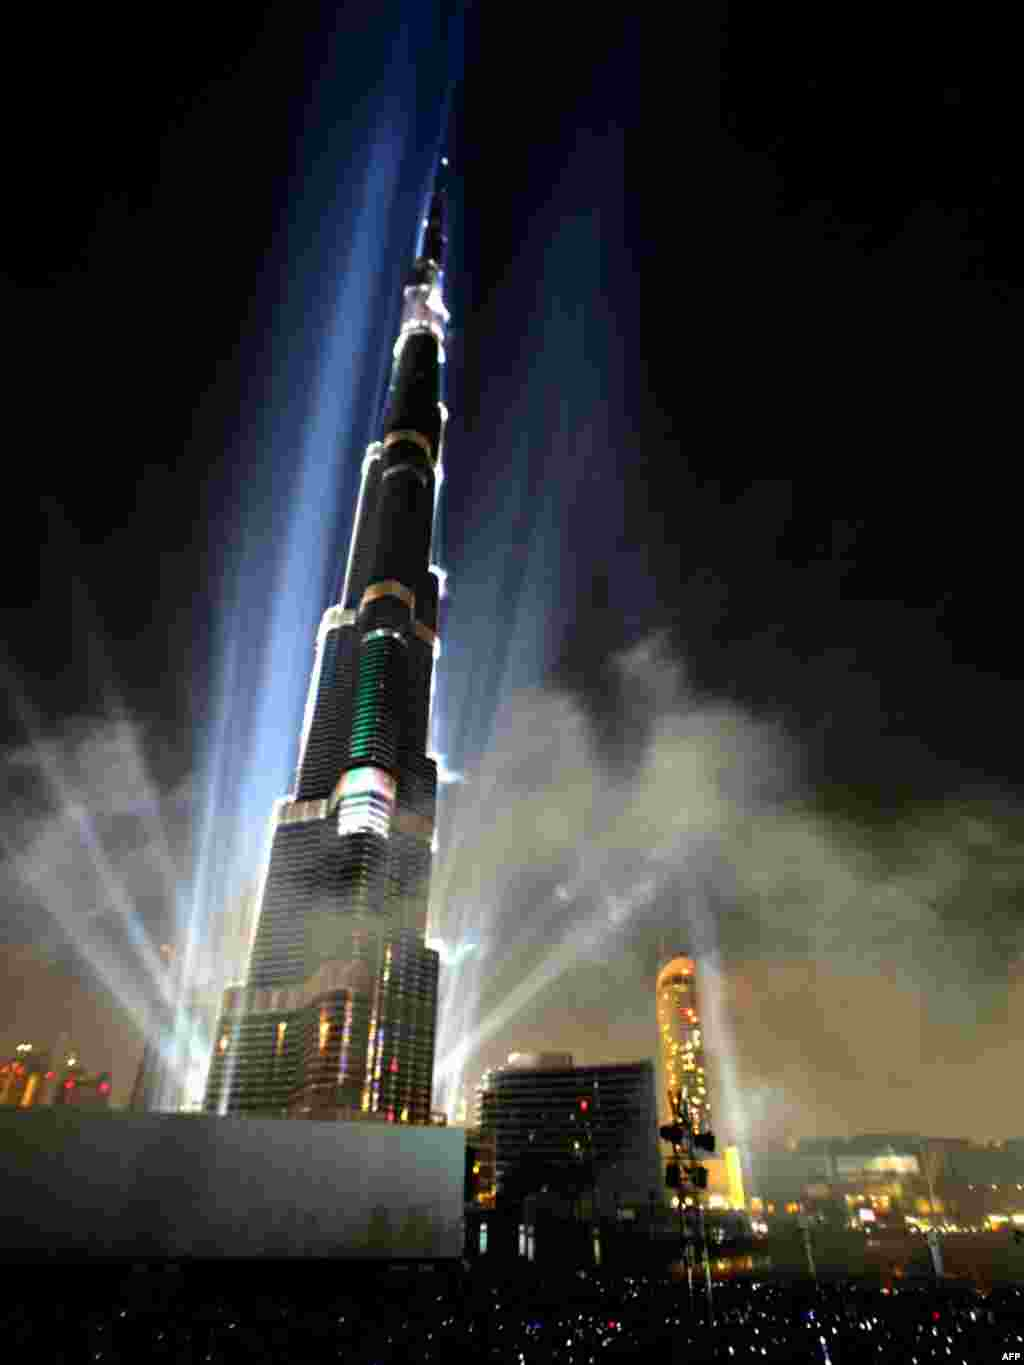 Dubai's Burj Khalifa tower, the world's tallest skyscraper, is illuminated by lasers during its opening ceremony on January 4. Photo by Karim Sahib for AFP